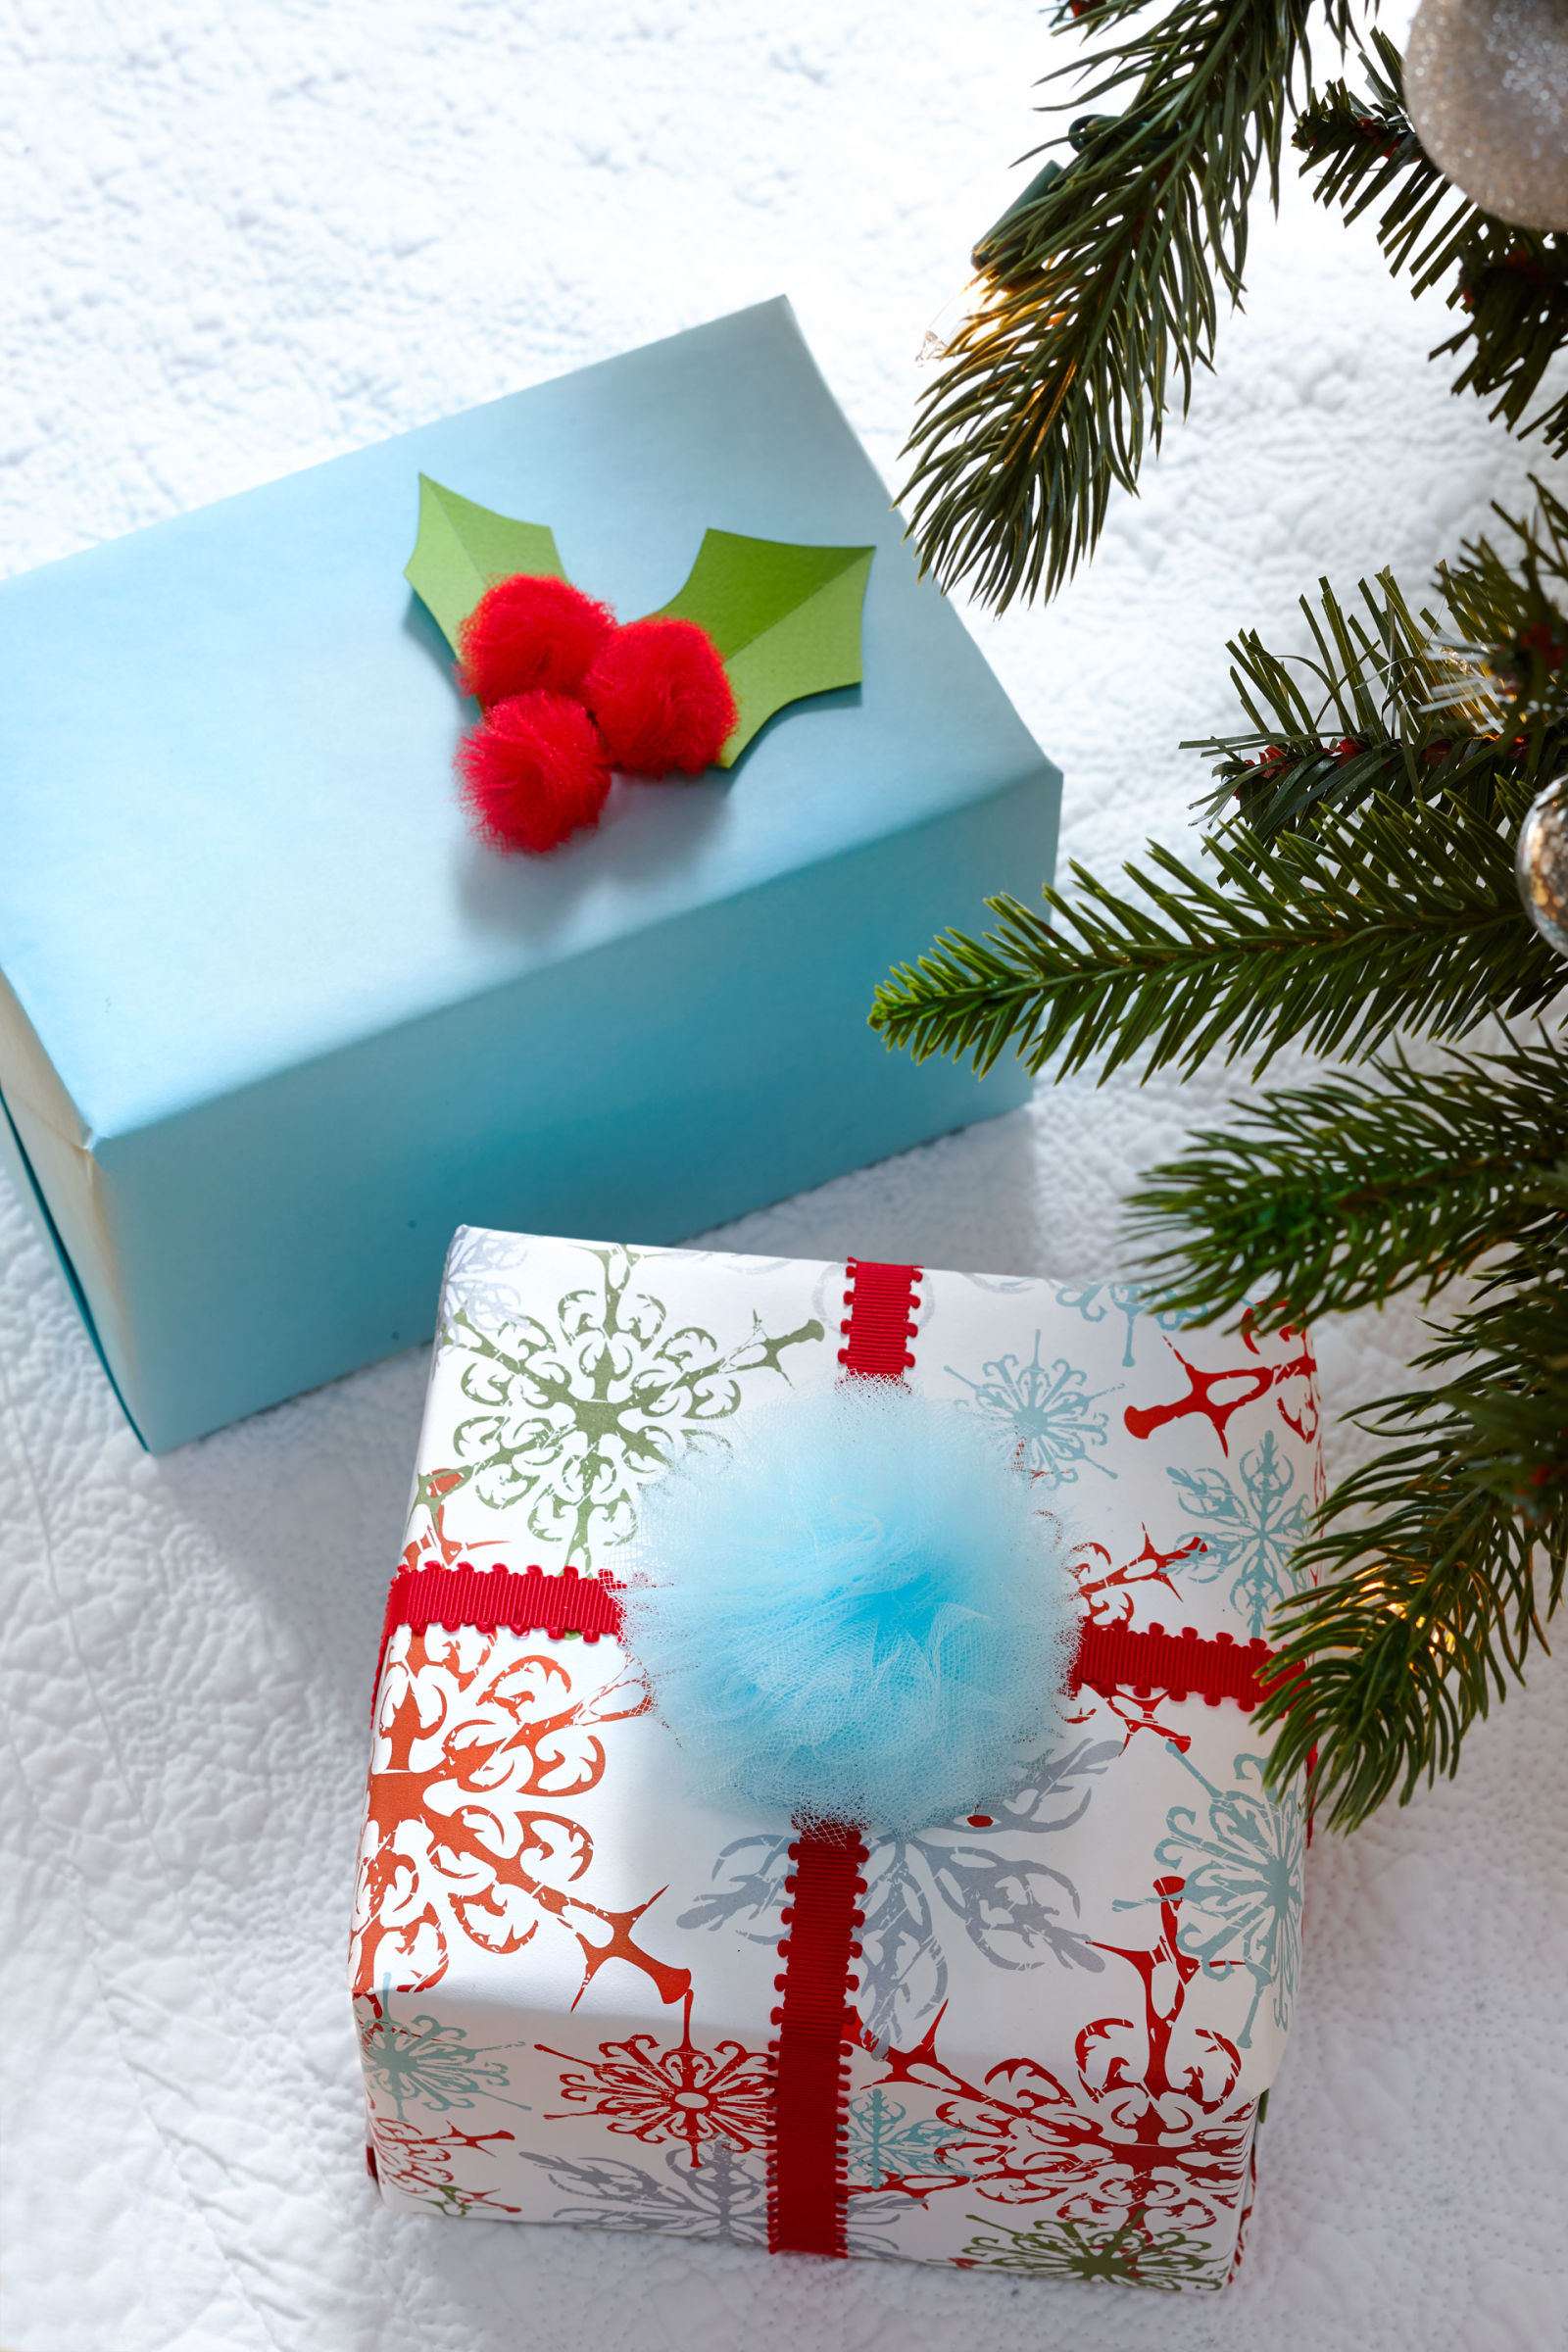 Uncategorized Wrap A Sweet gift wrapping ideas how to wrap a gift